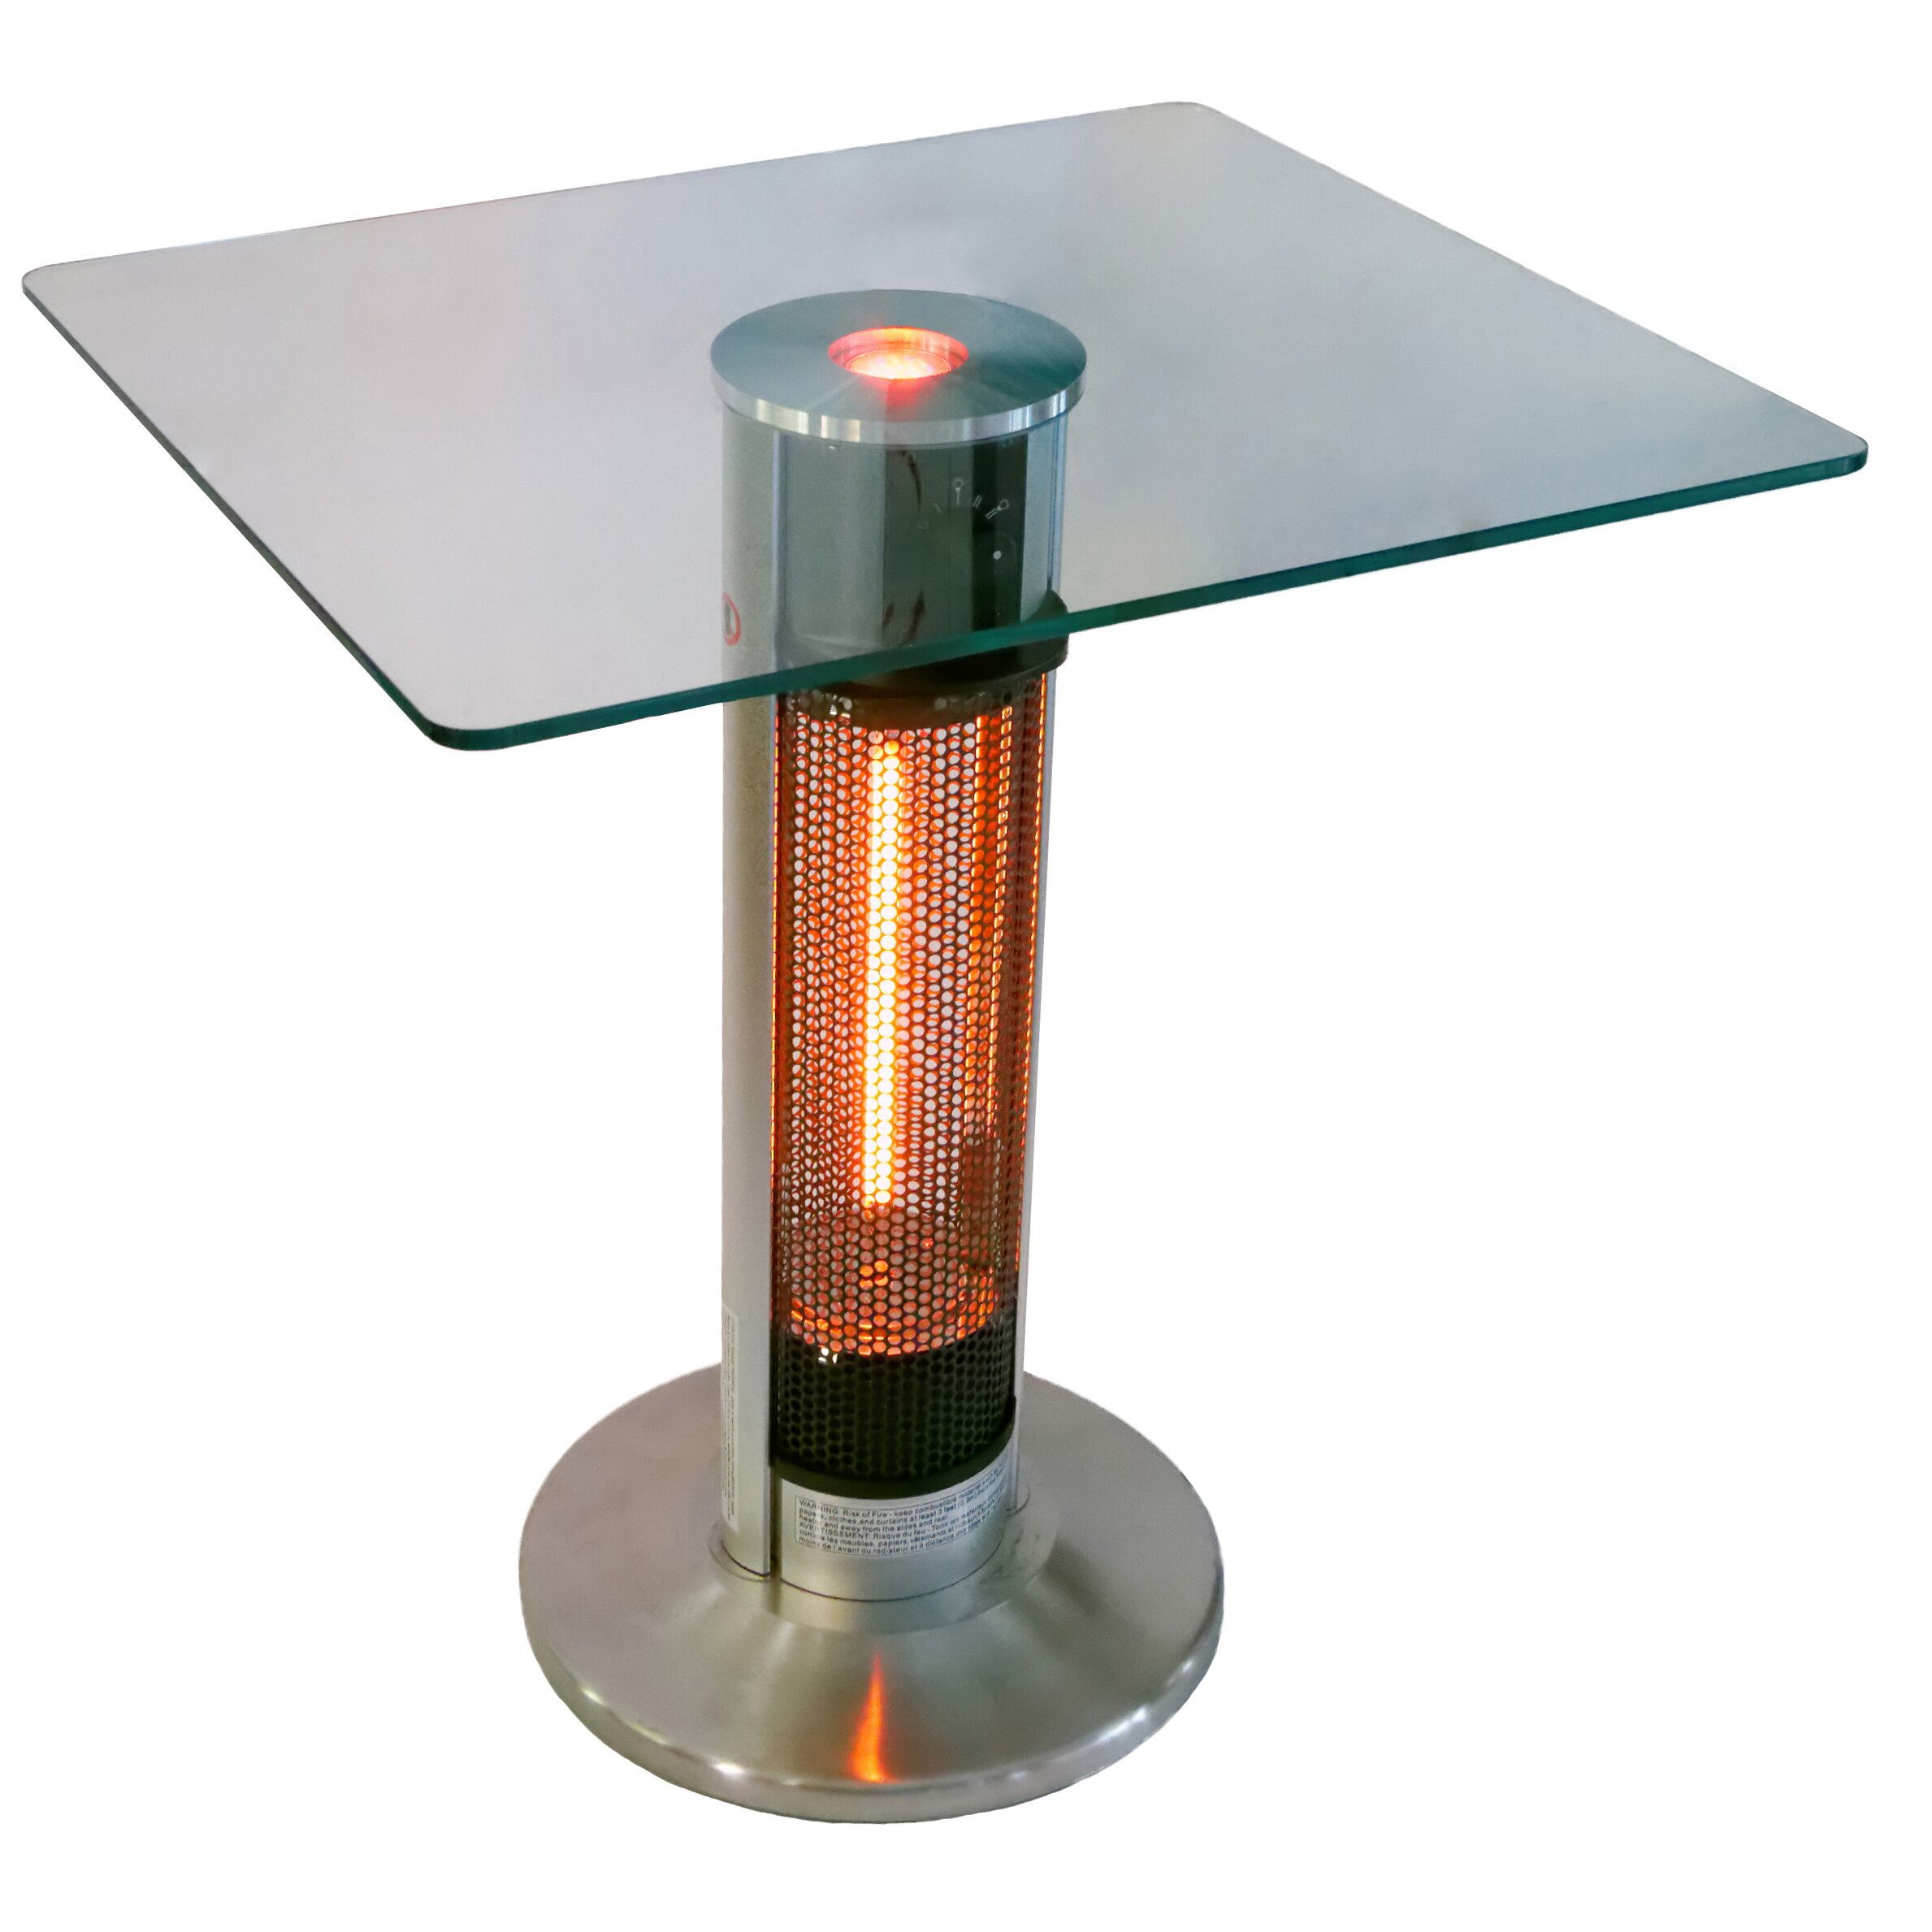 4,760 BTU Portable Electric Infrared Tower Heater with LED Lights by